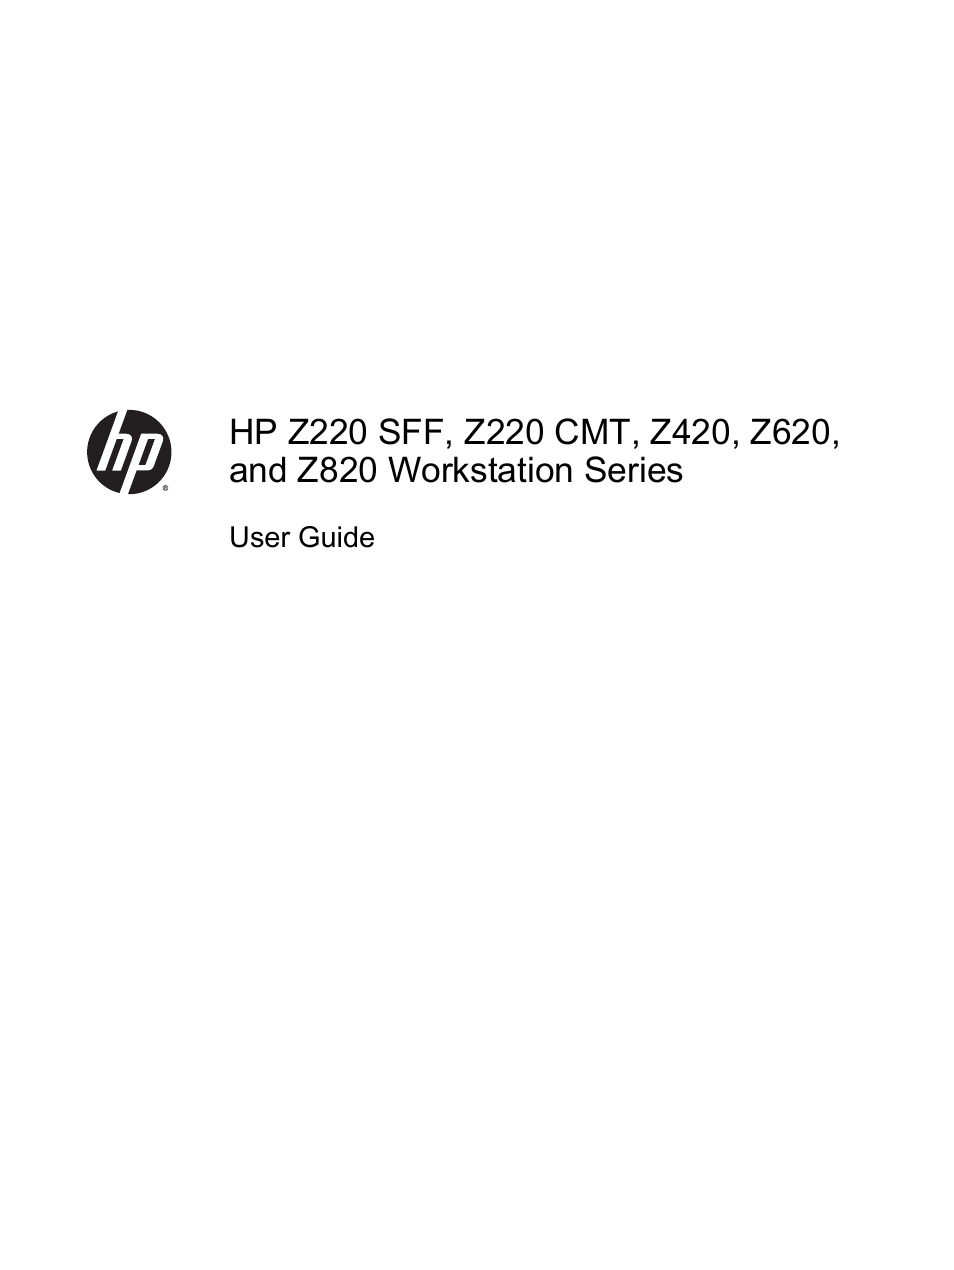 Hp Vms Manuals Ebook Wiring Diagram Besides Jcb Backhoe On John Deere 620 Openvms Edt Reference Manual Operating Systems And Array Z820 Rh Zylyndo De